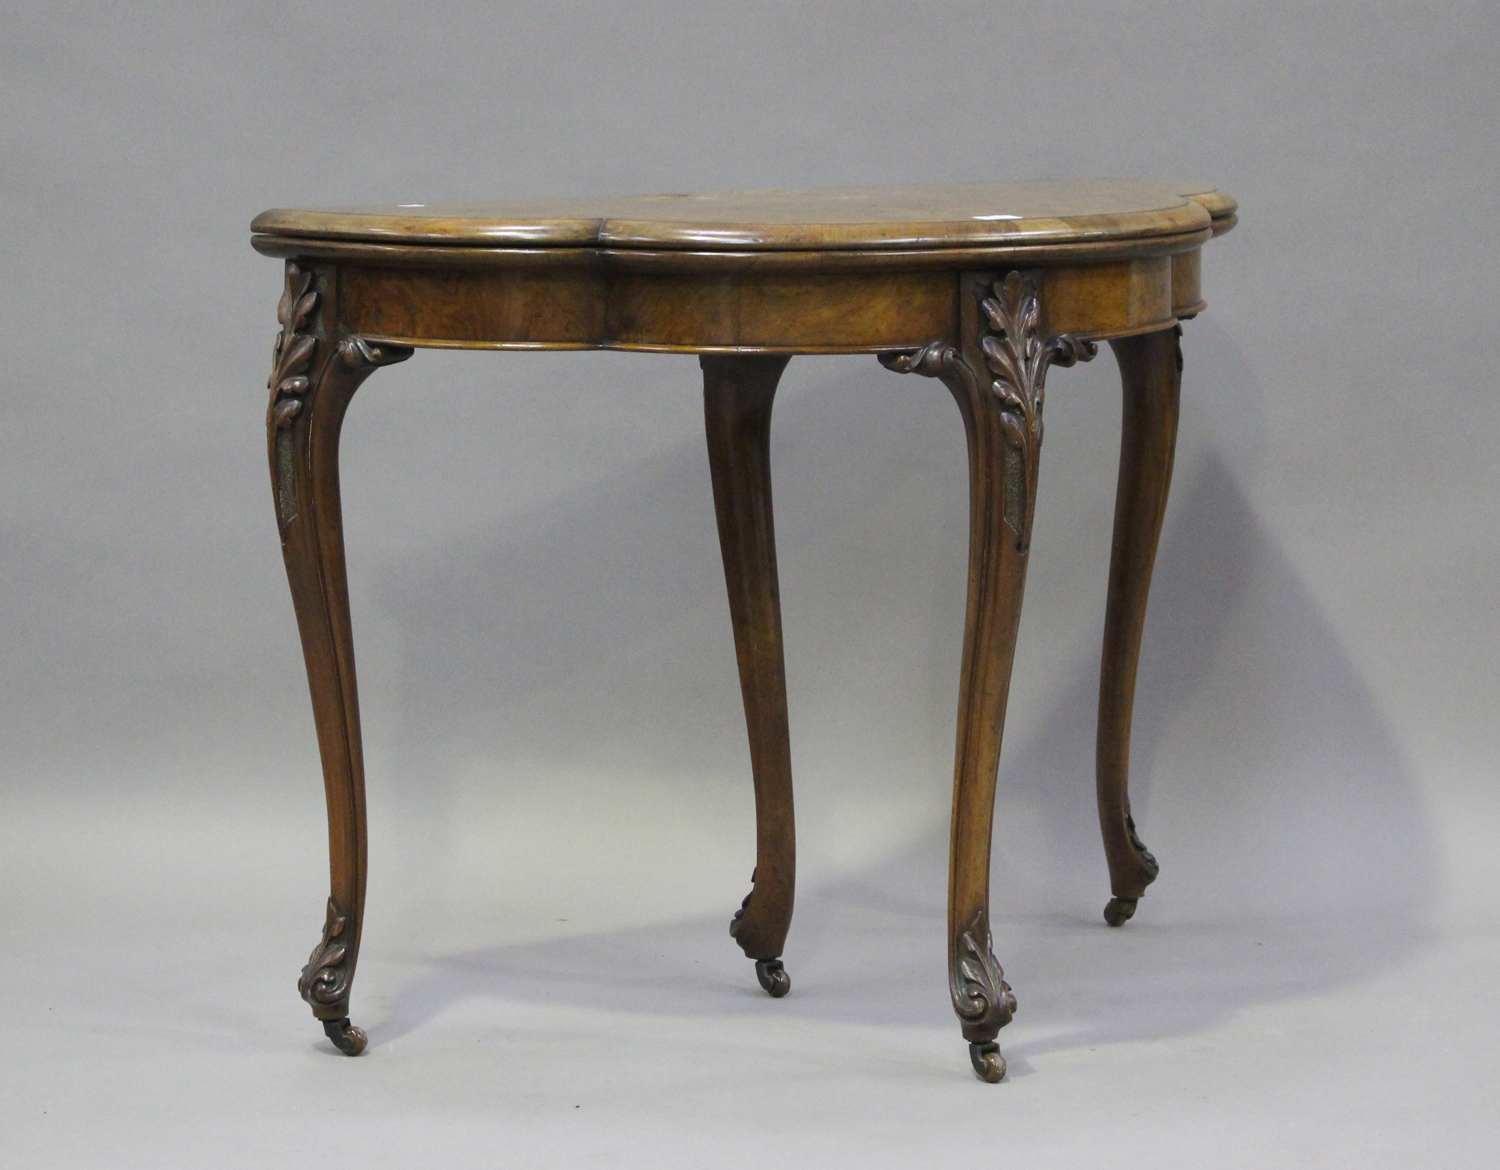 A mid-Victorian walnut fold-over card table with foliate inlaid decoration, on carved cabriole legs,